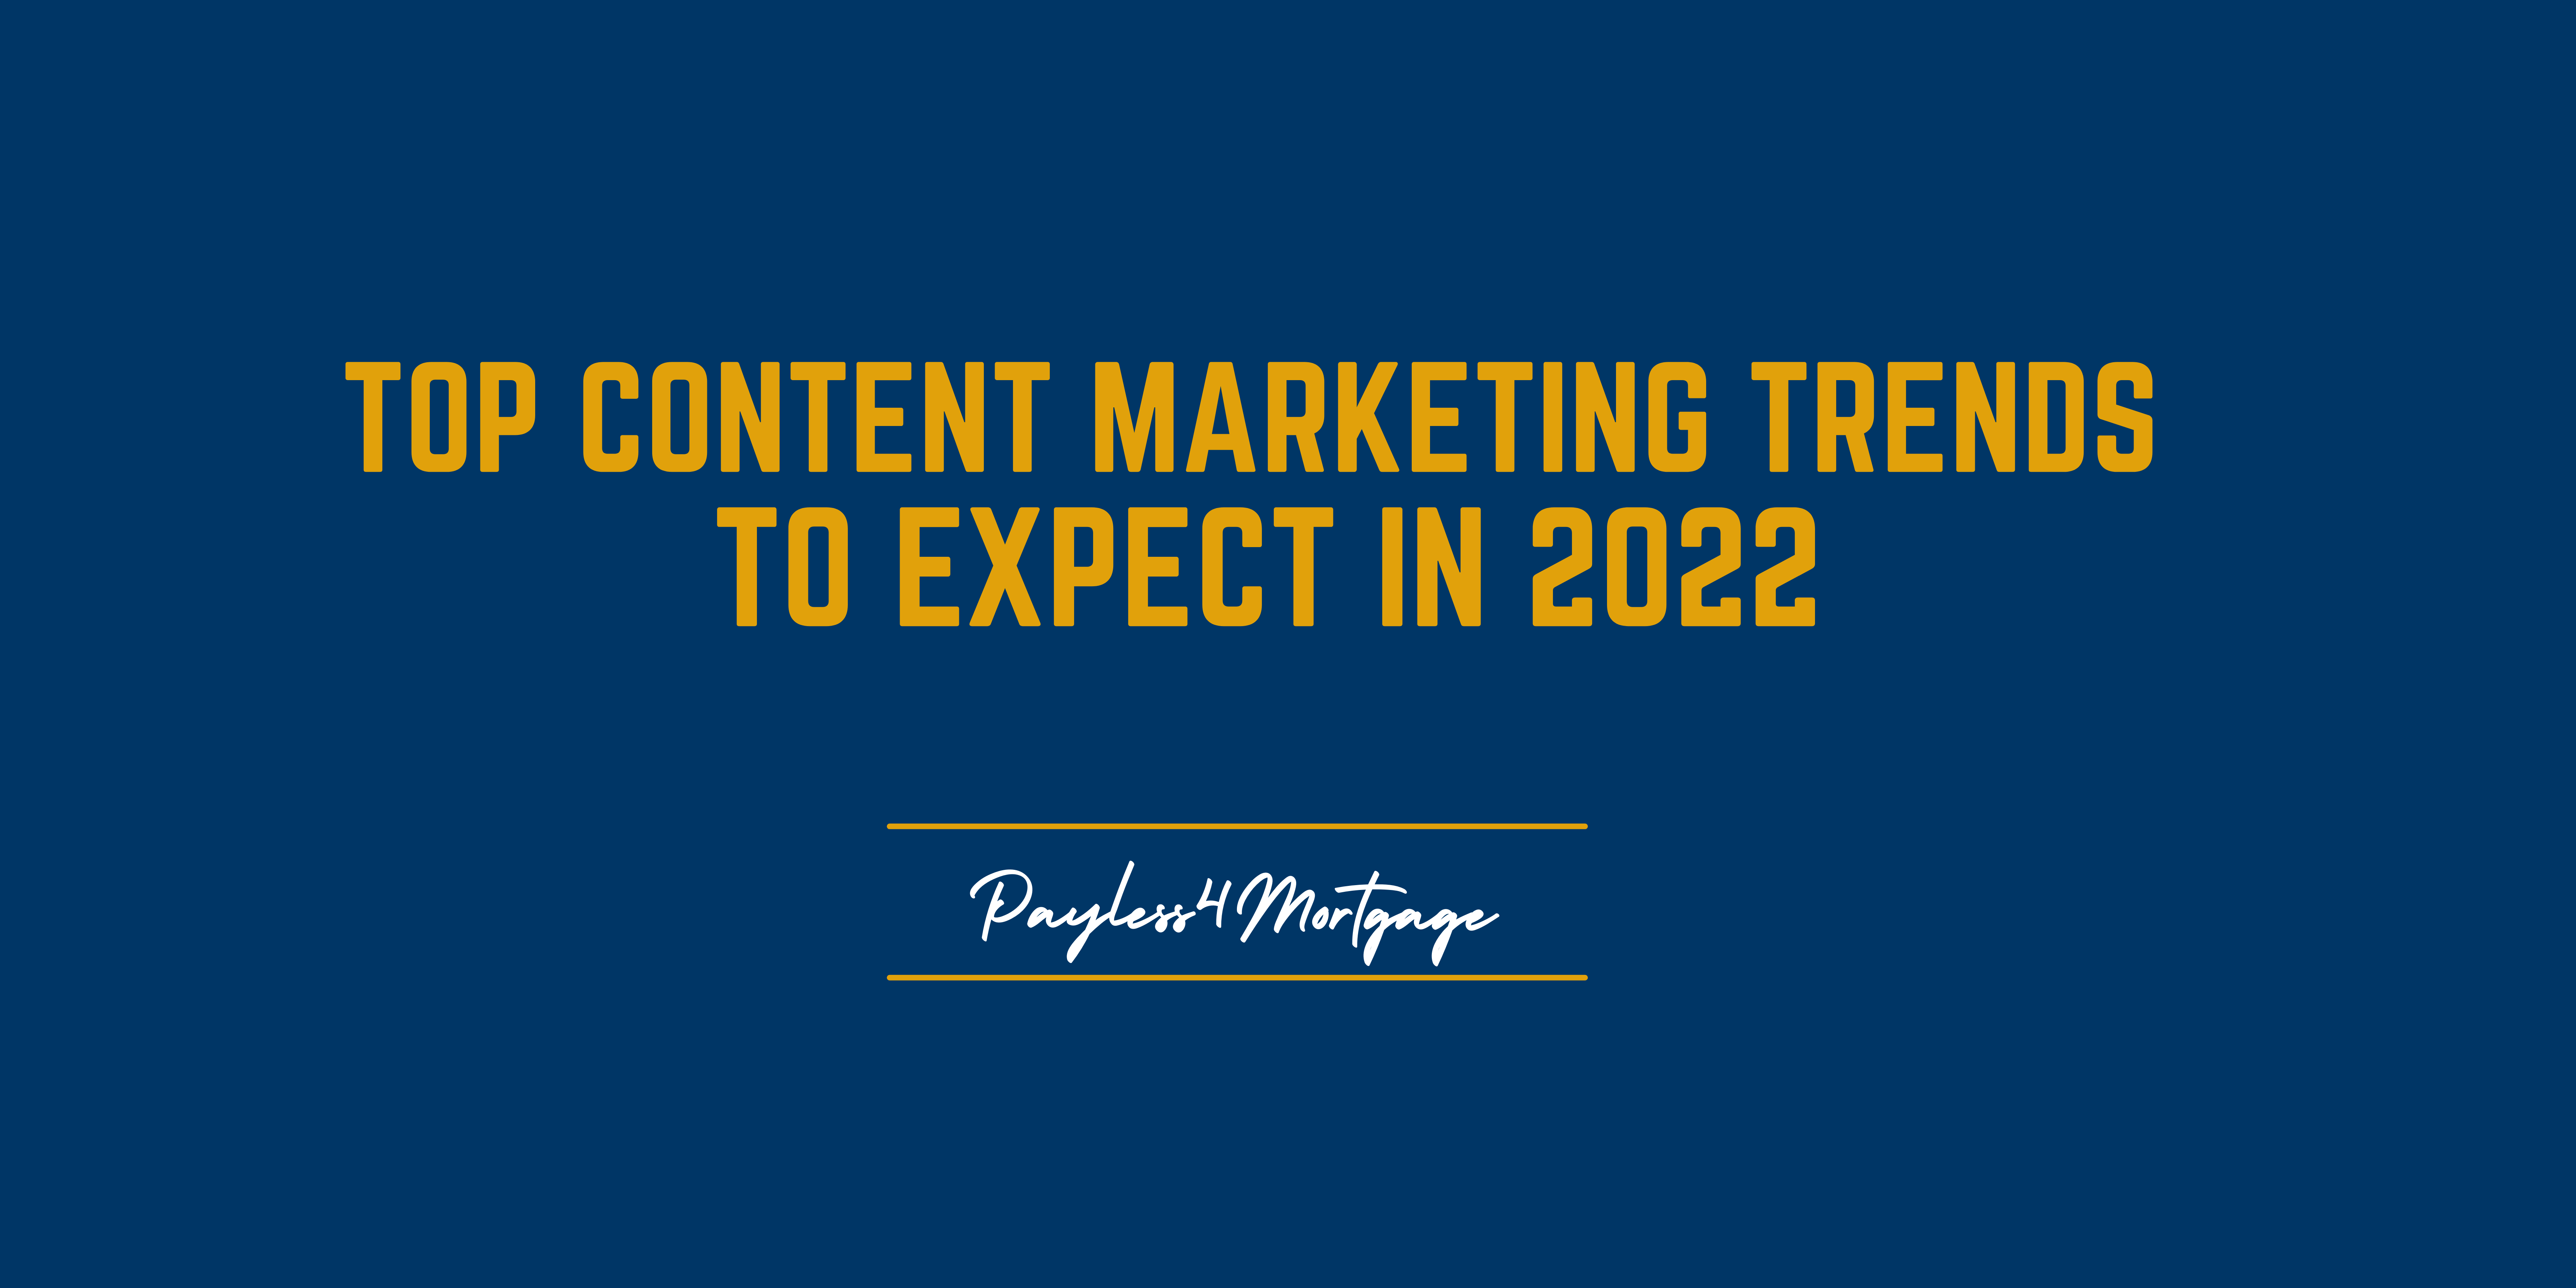 Top Content Marketing Trends to Expect in 2022